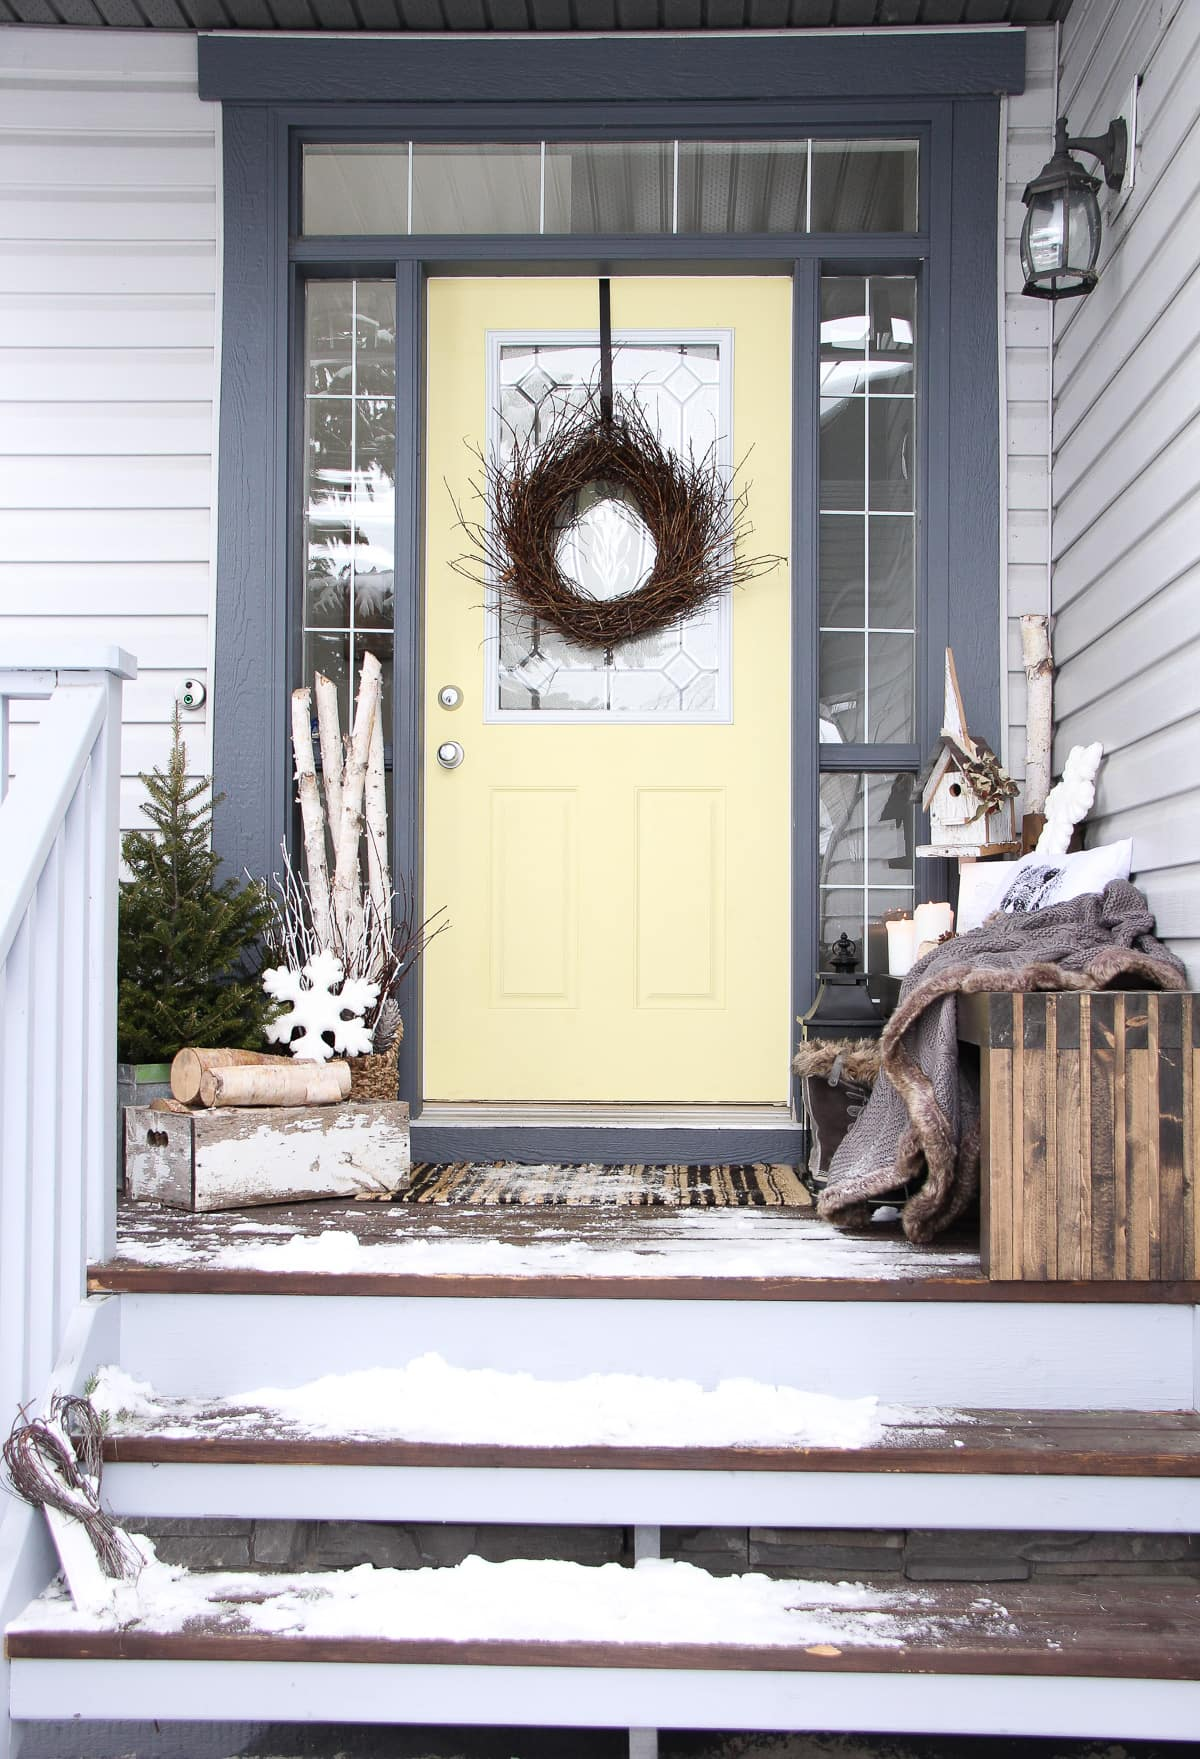 Decorating the Porch for Winter